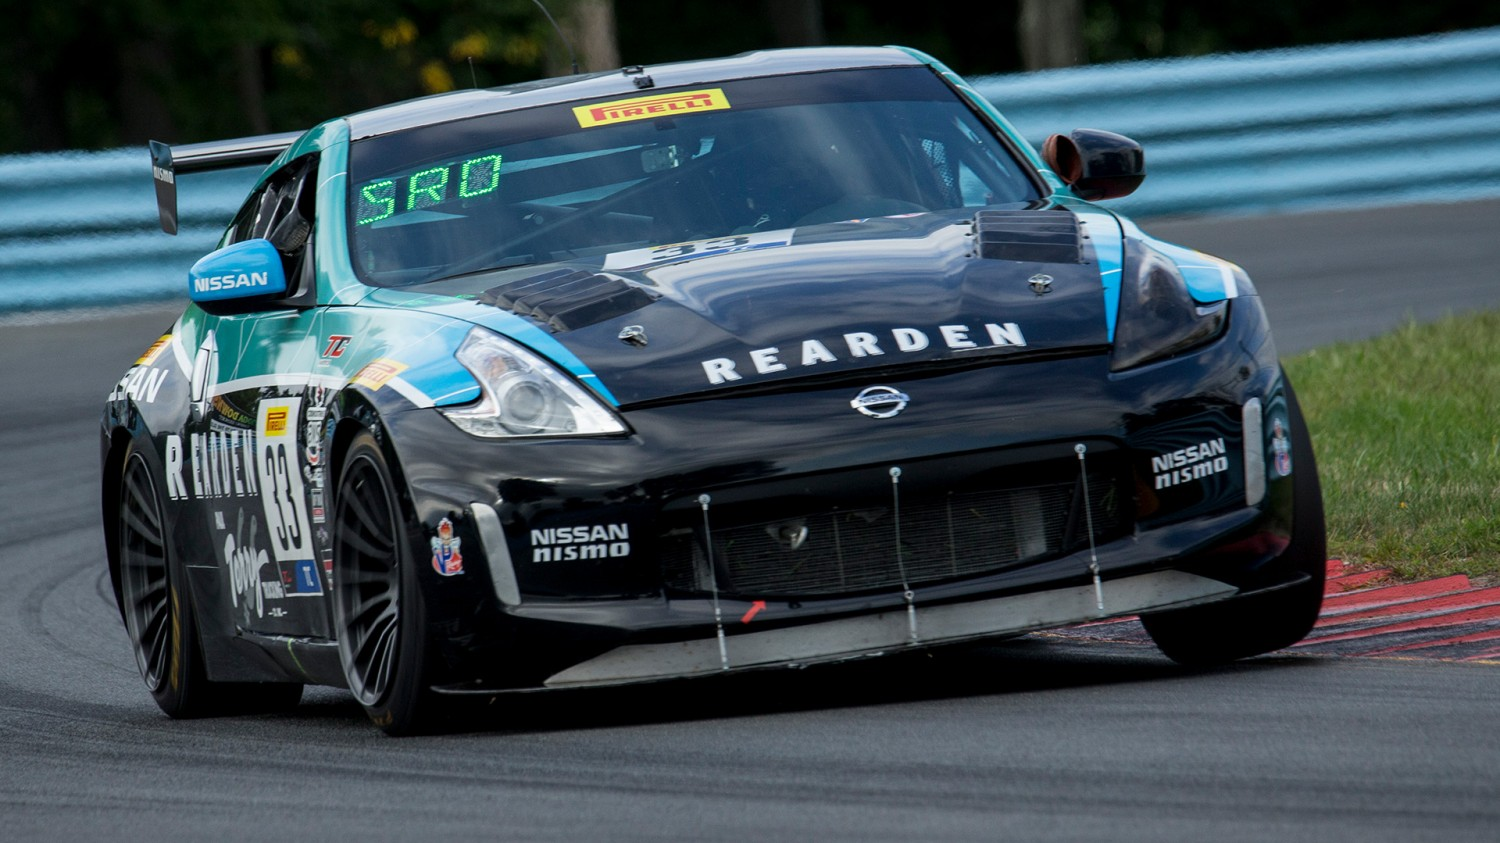 Terry Outduels Schwartz to Win TC Round 9 at The Glen